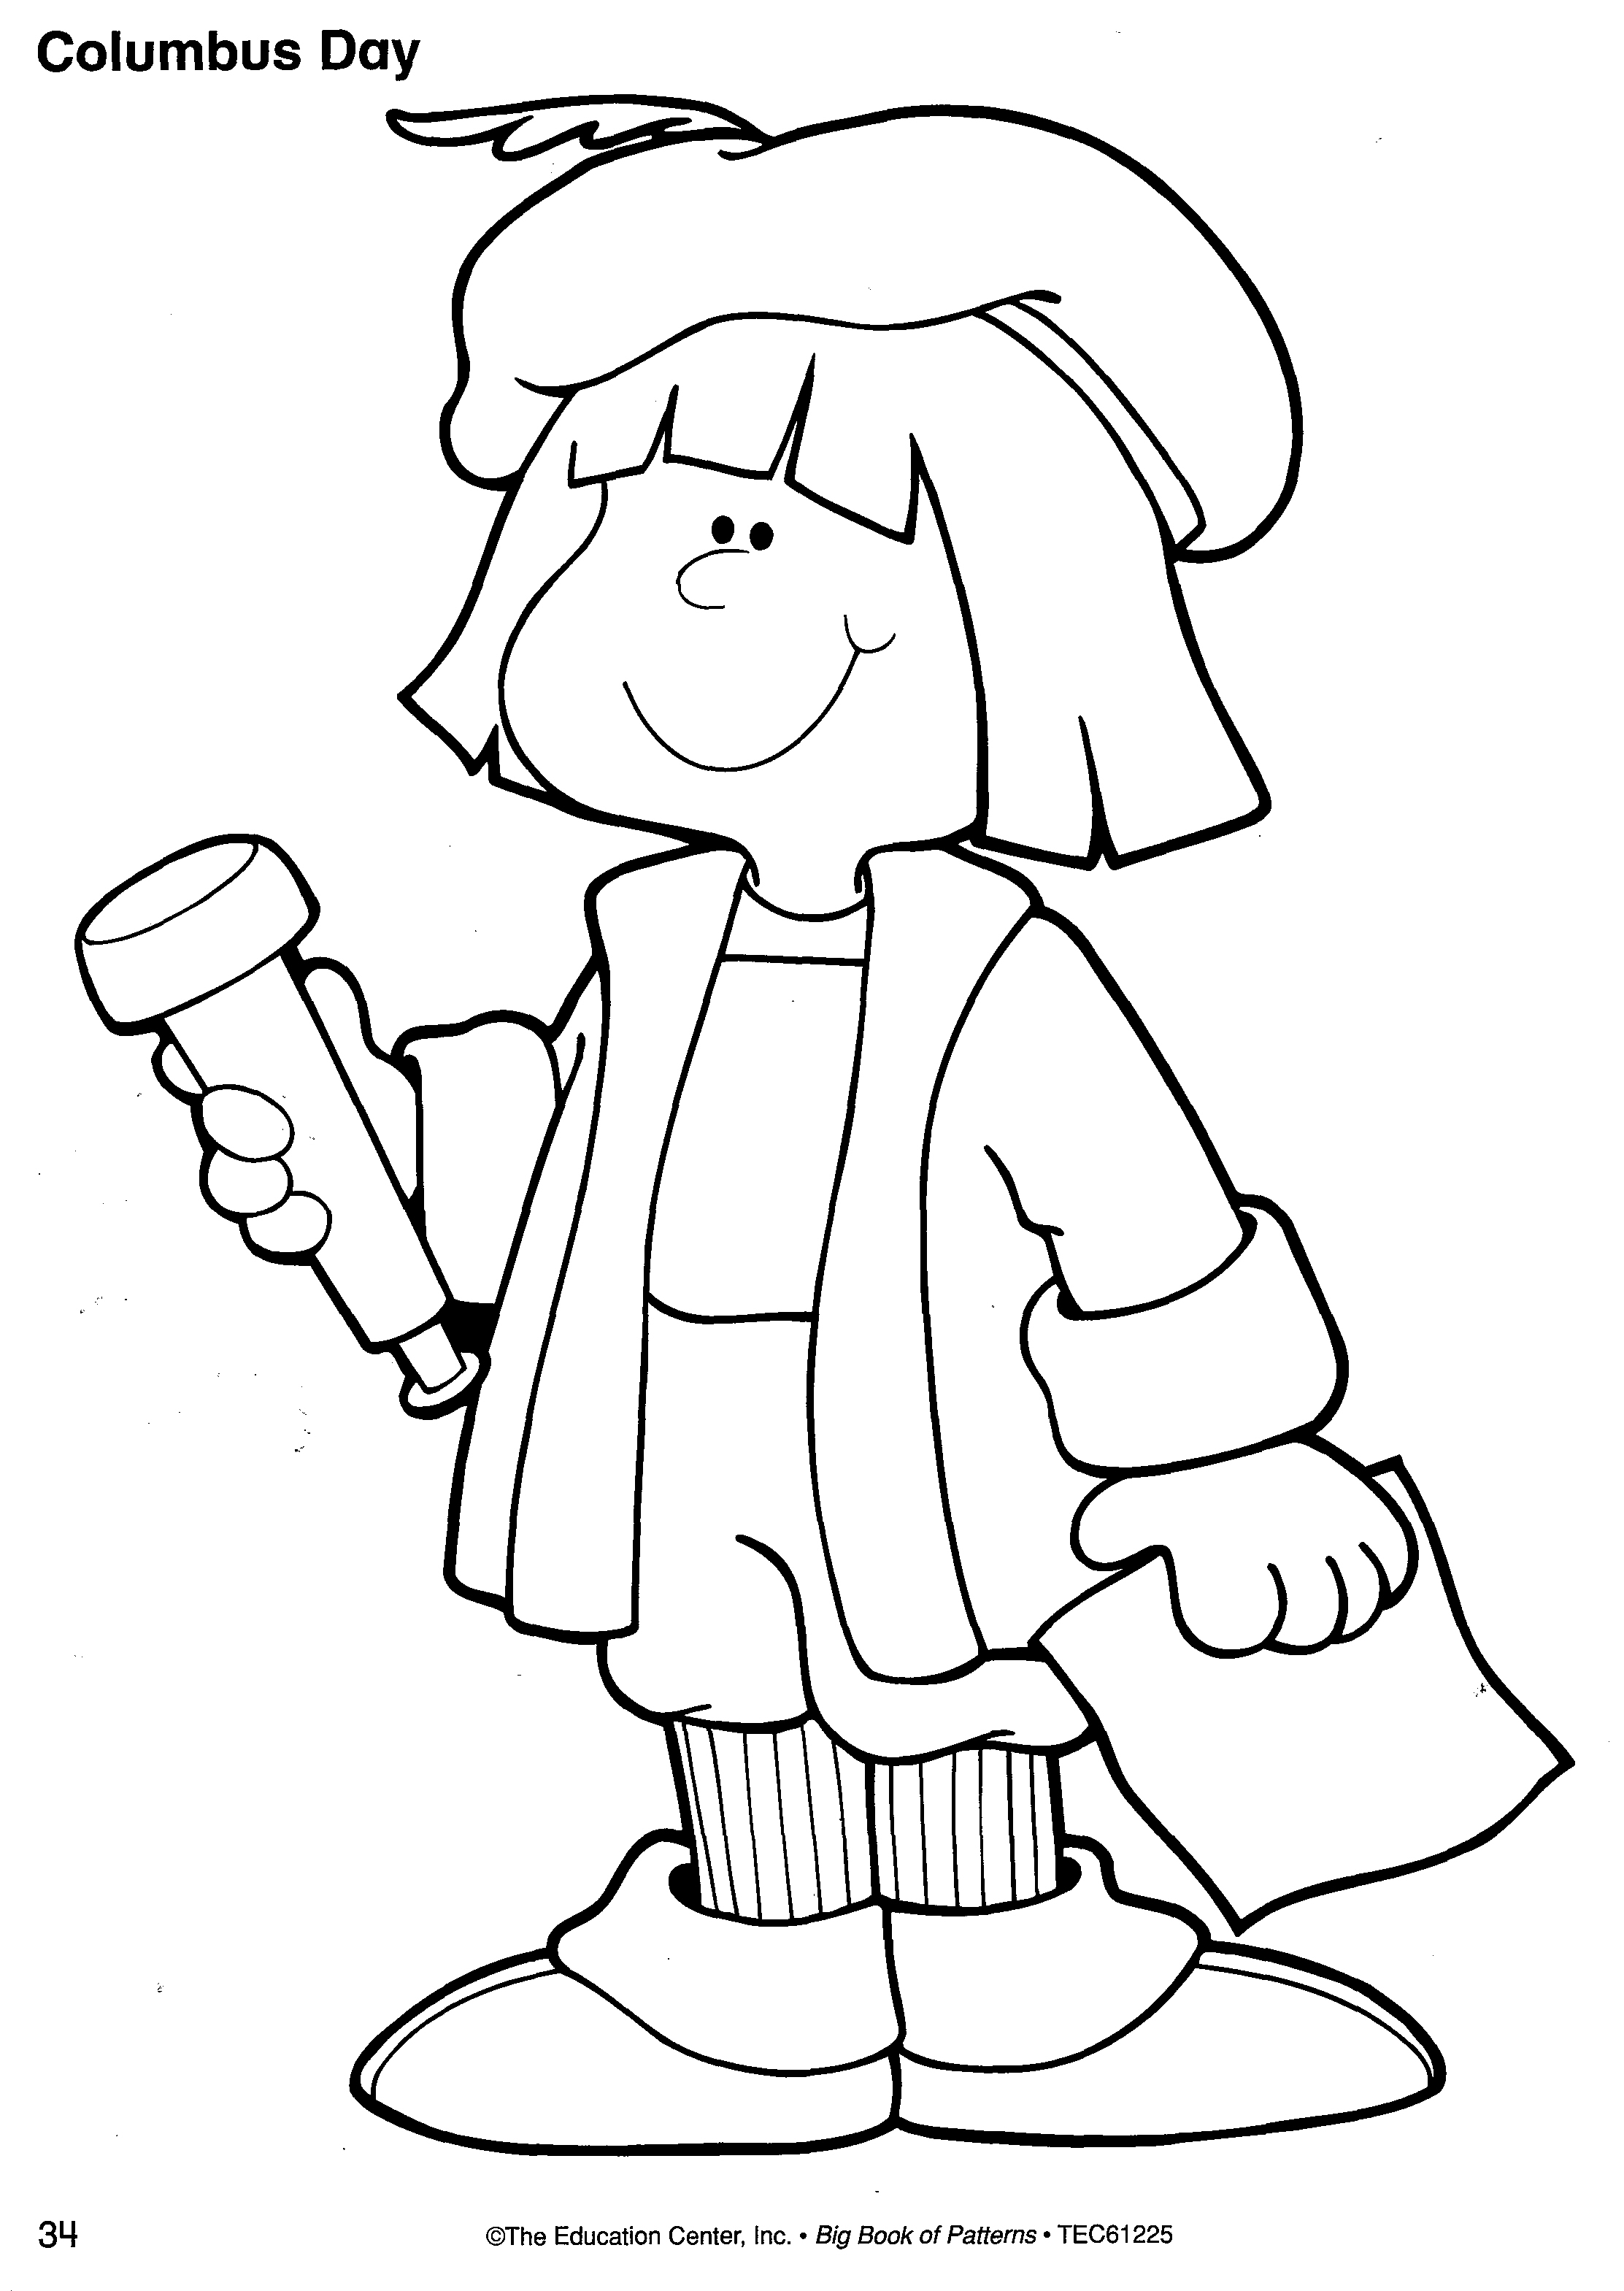 coloring pages of christopher columbus - christopher columbus coloring page the